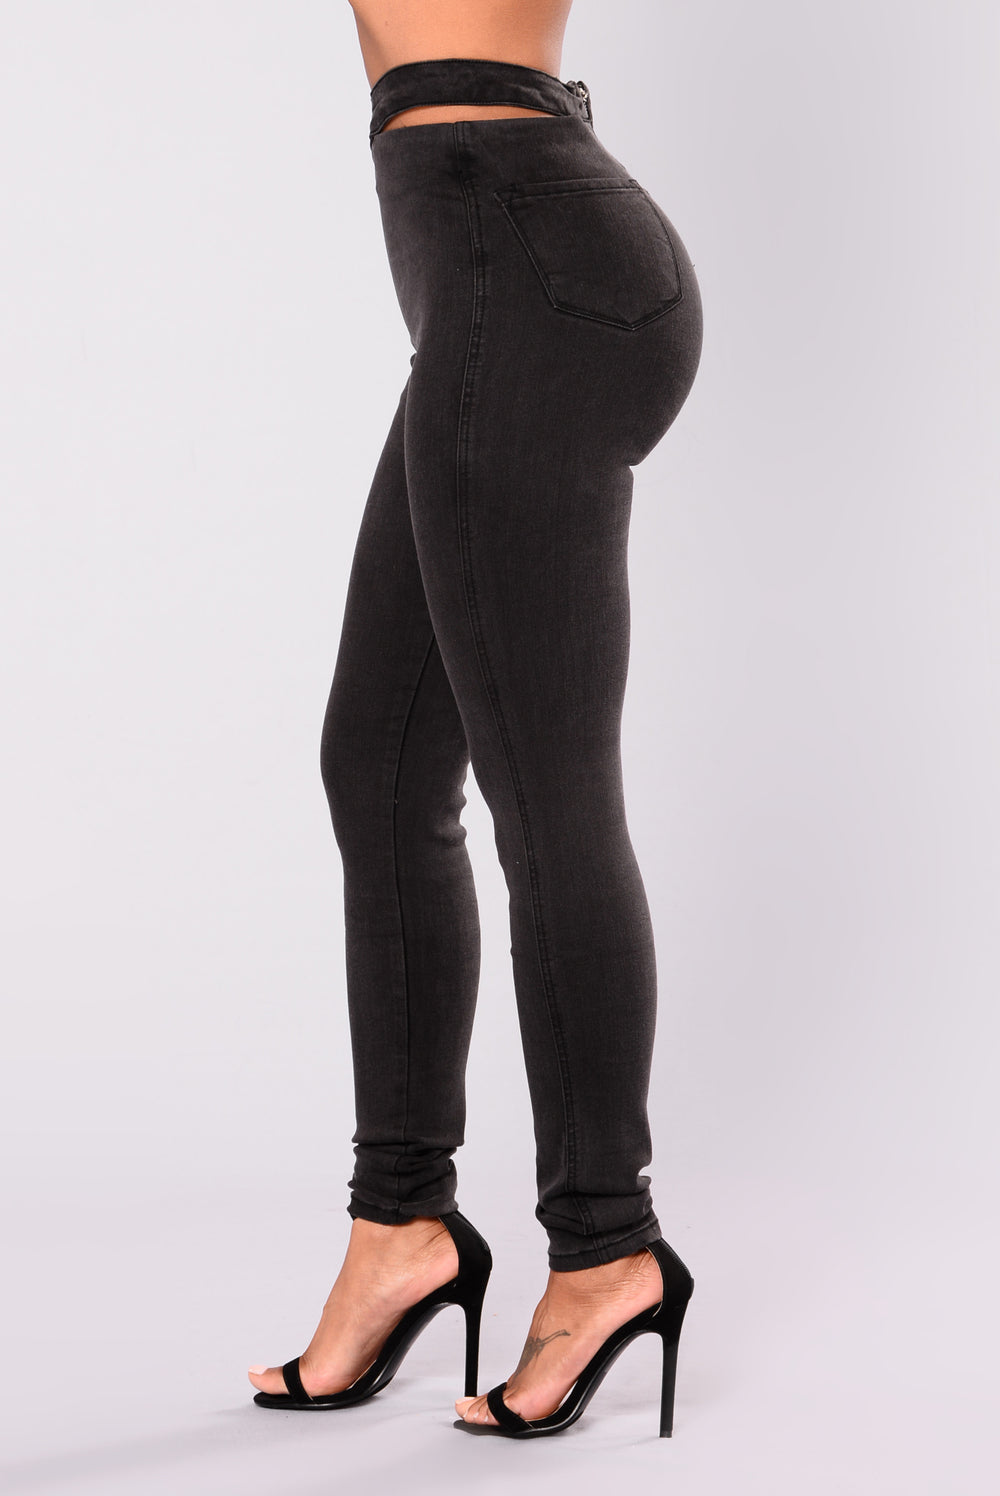 The black color will go with anything, and gives it a rock and roll feel. The knee slashes add a fun funky touch to these pants. The denim material is durable and will fit you like a glove.